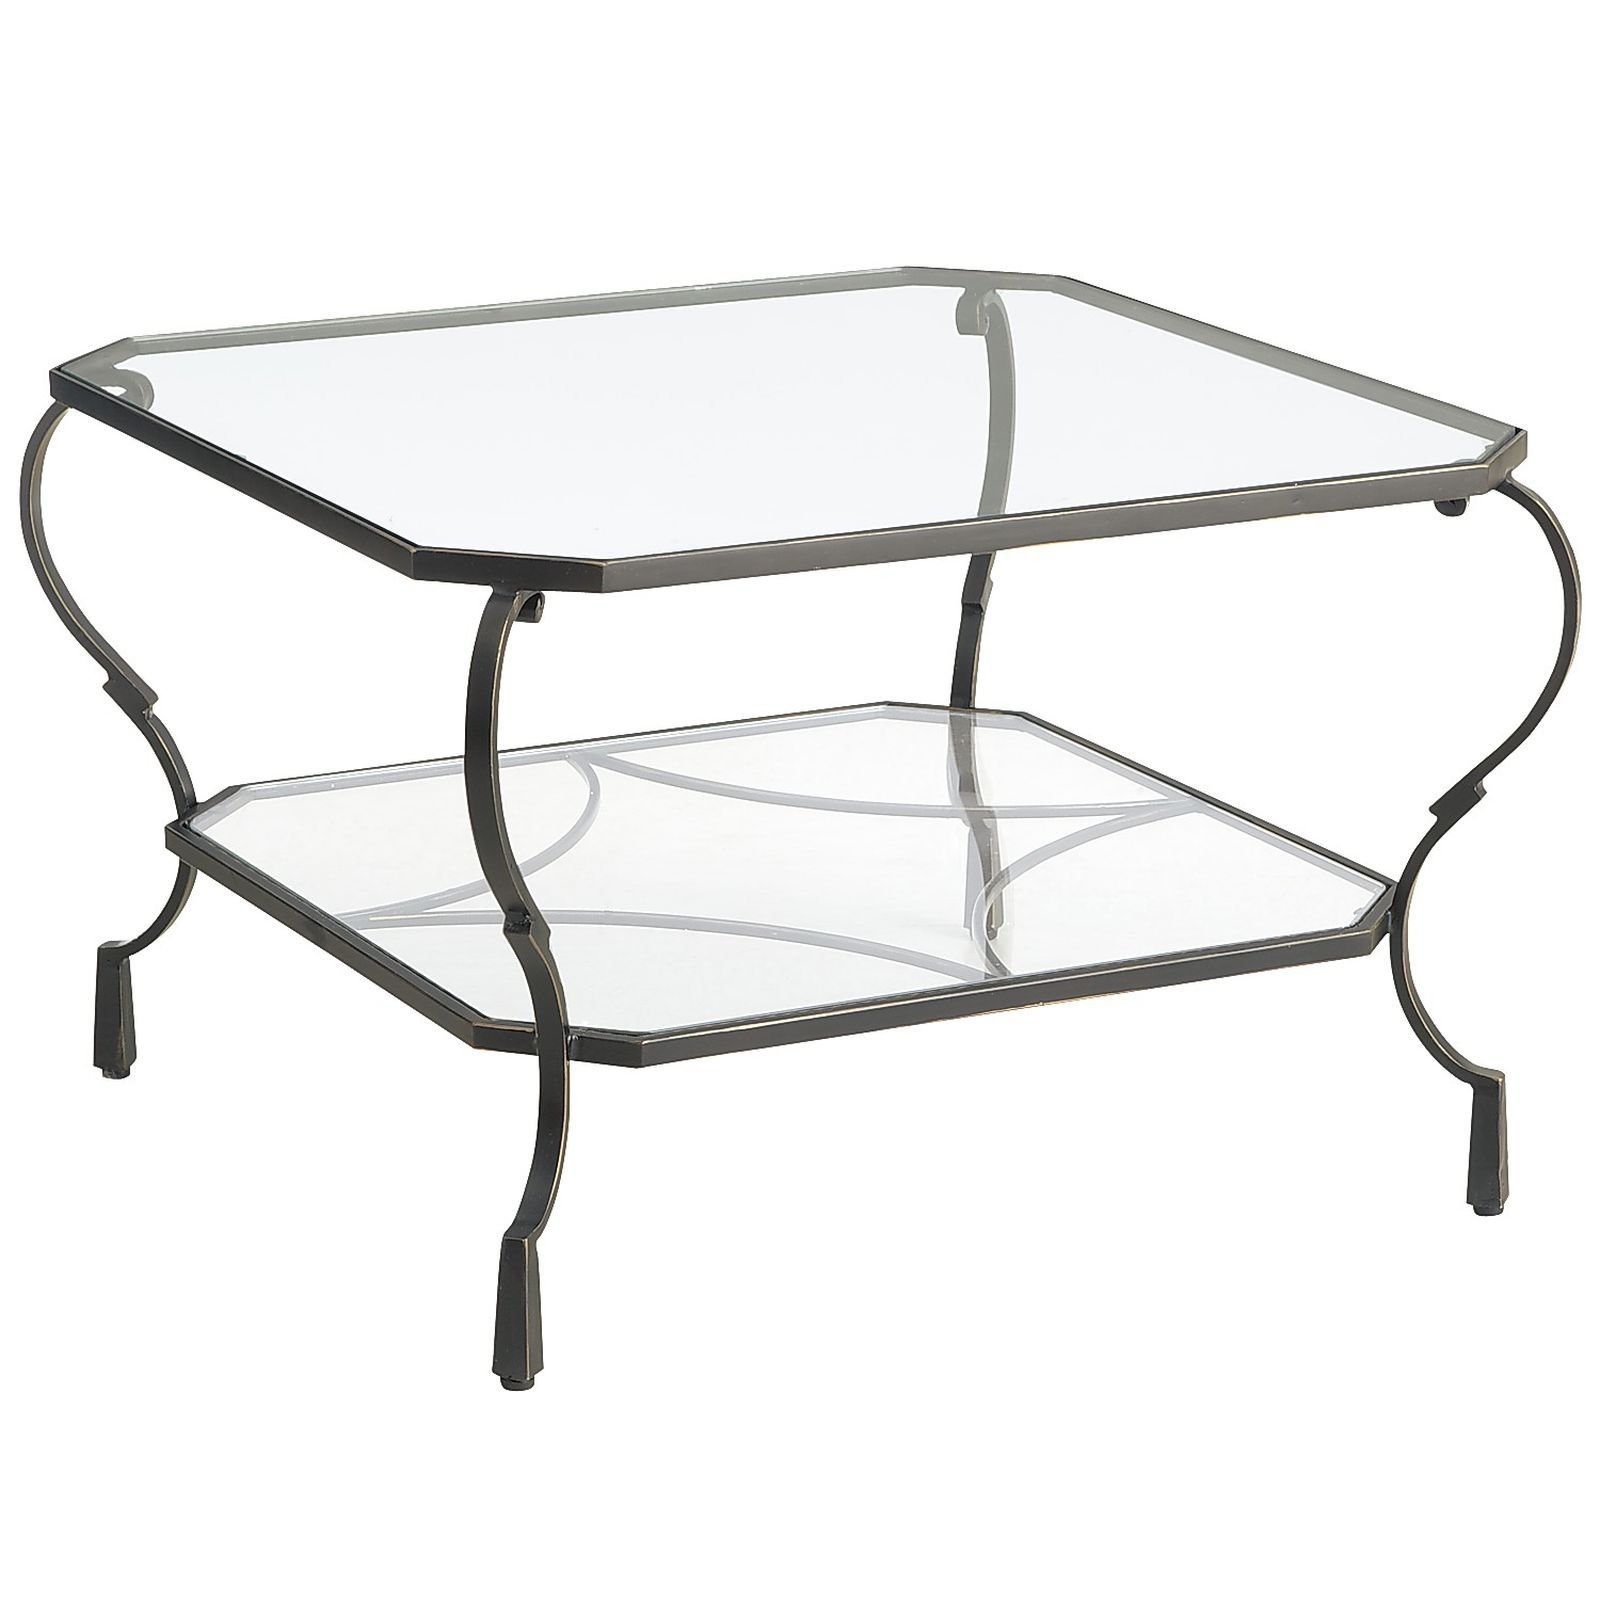 Chasca Square Coffee Table Brown Coffee Table Square Coffee Table Oval Coffee Tables [ 1600 x 1600 Pixel ]